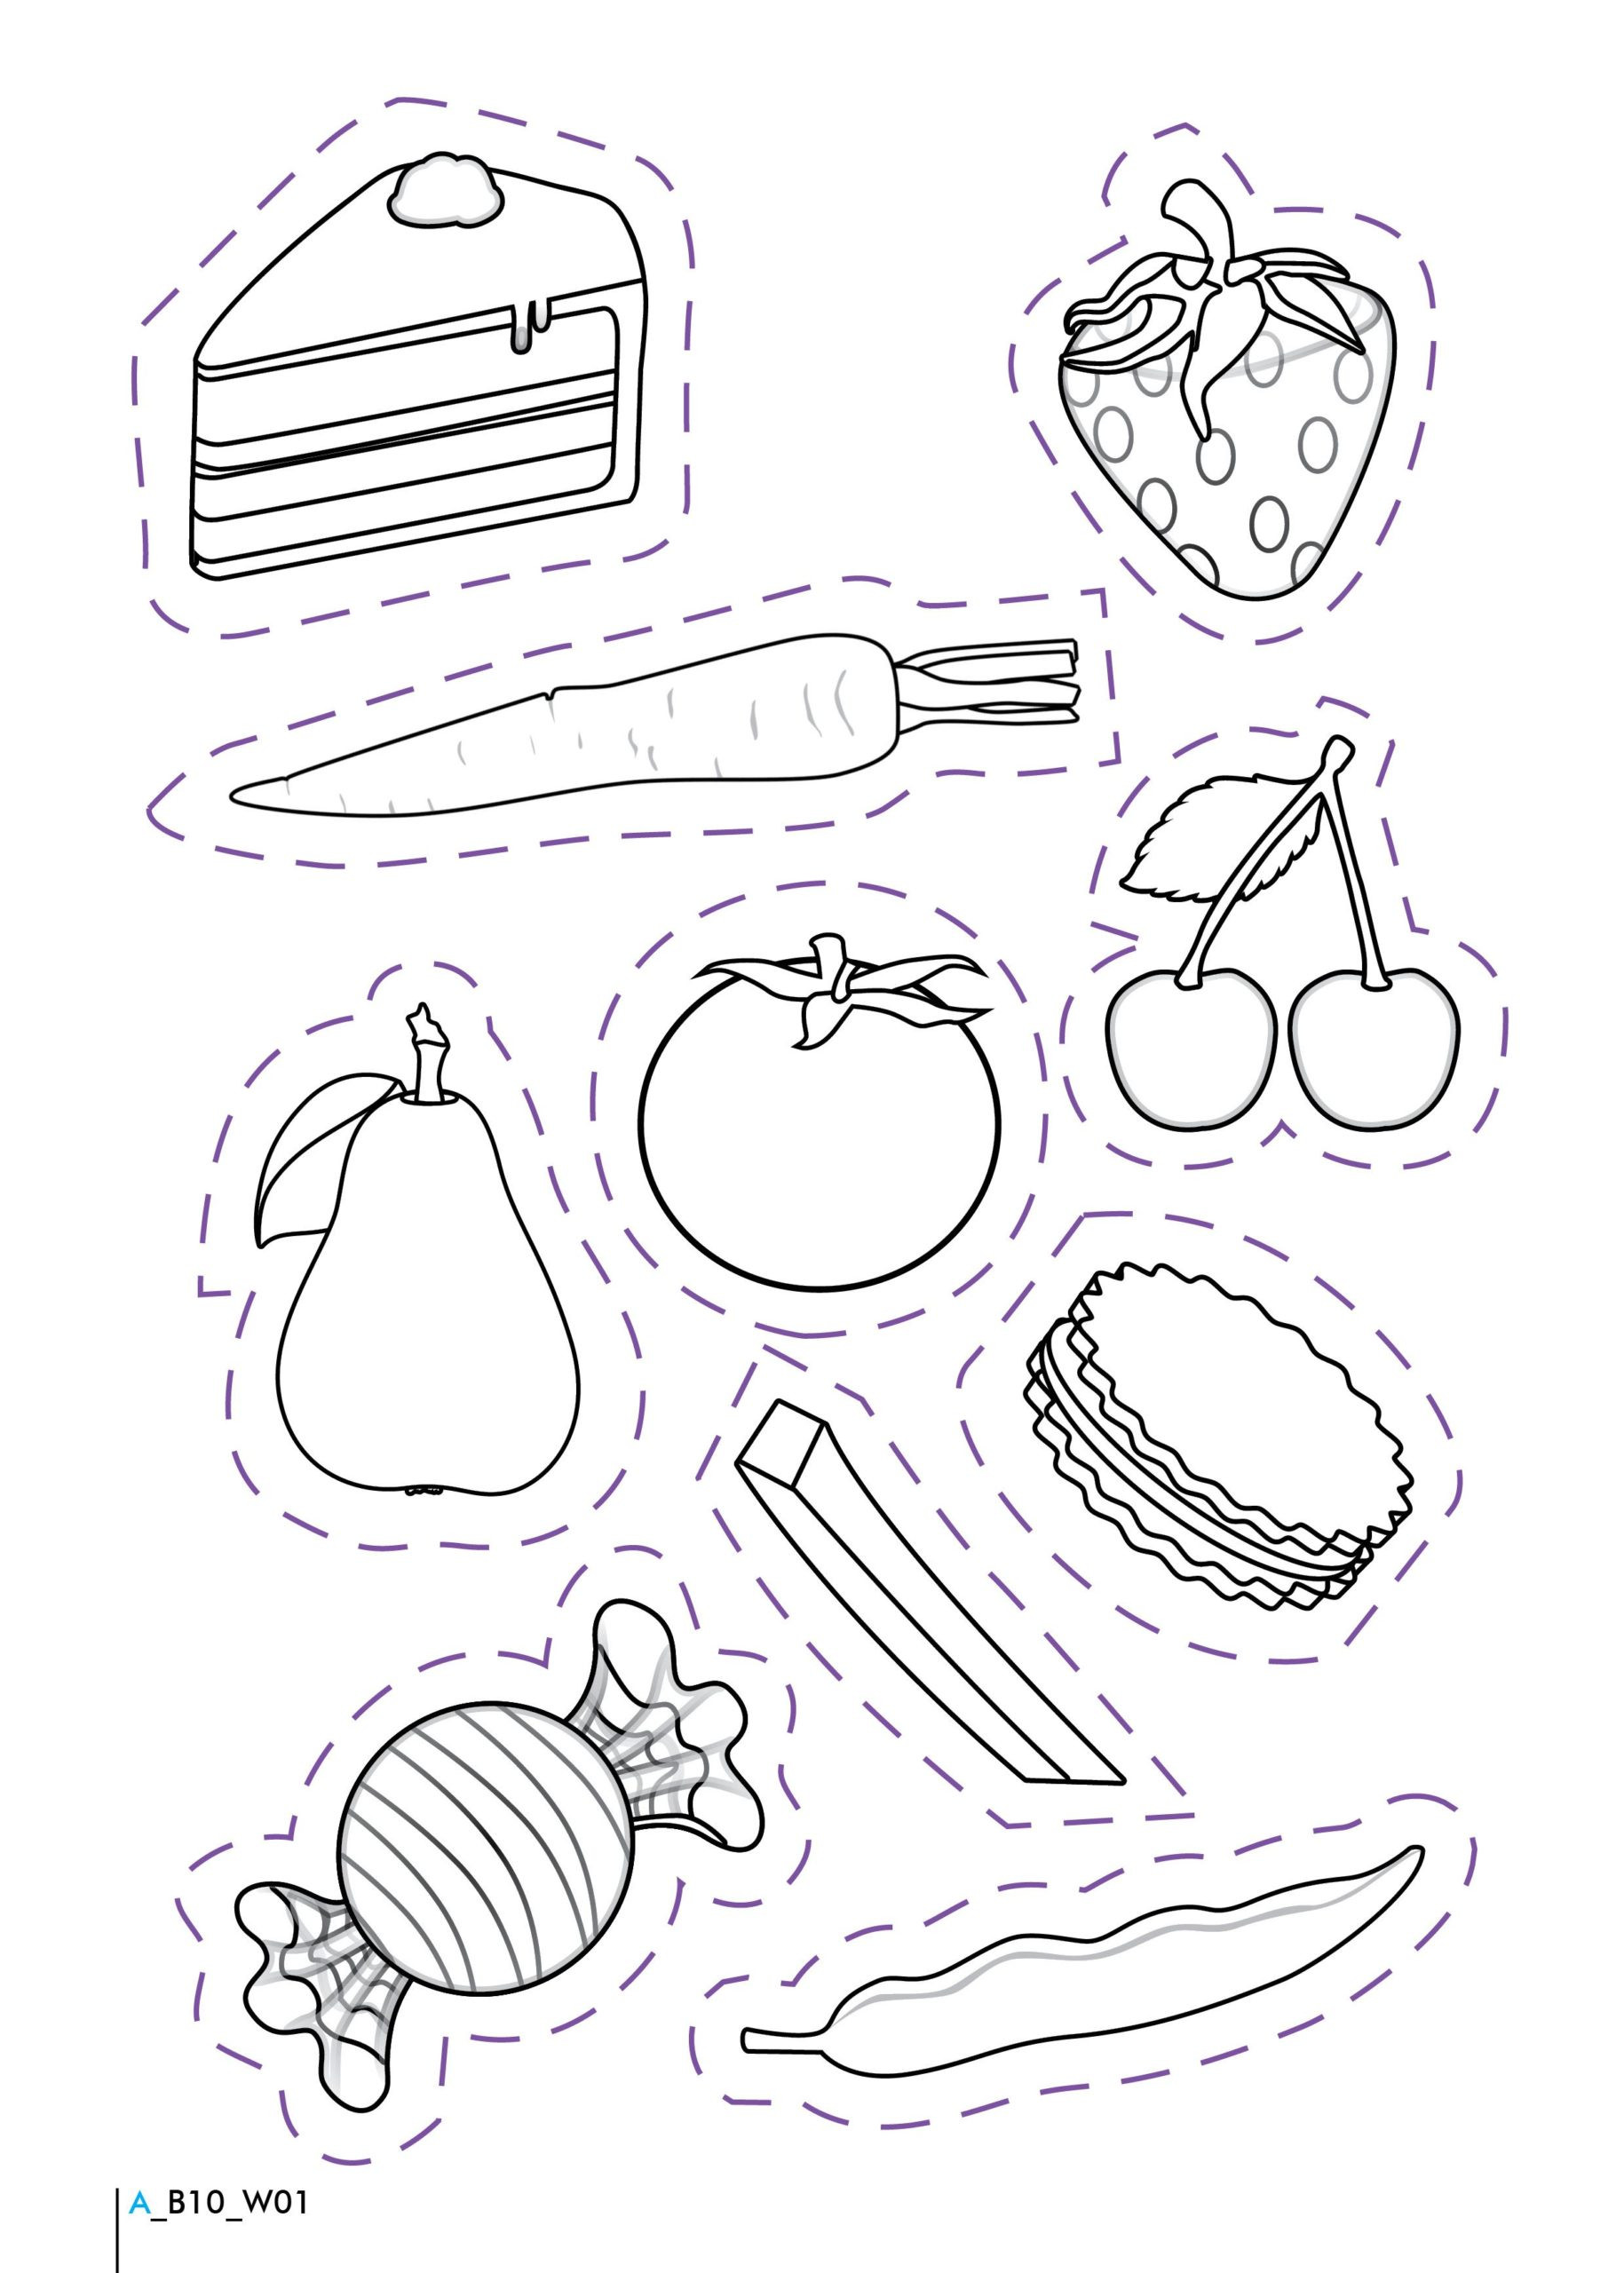 Free Printable Health Worksheets Healthy and Unhealthy Foods Worksheet Food Junk Worksheets